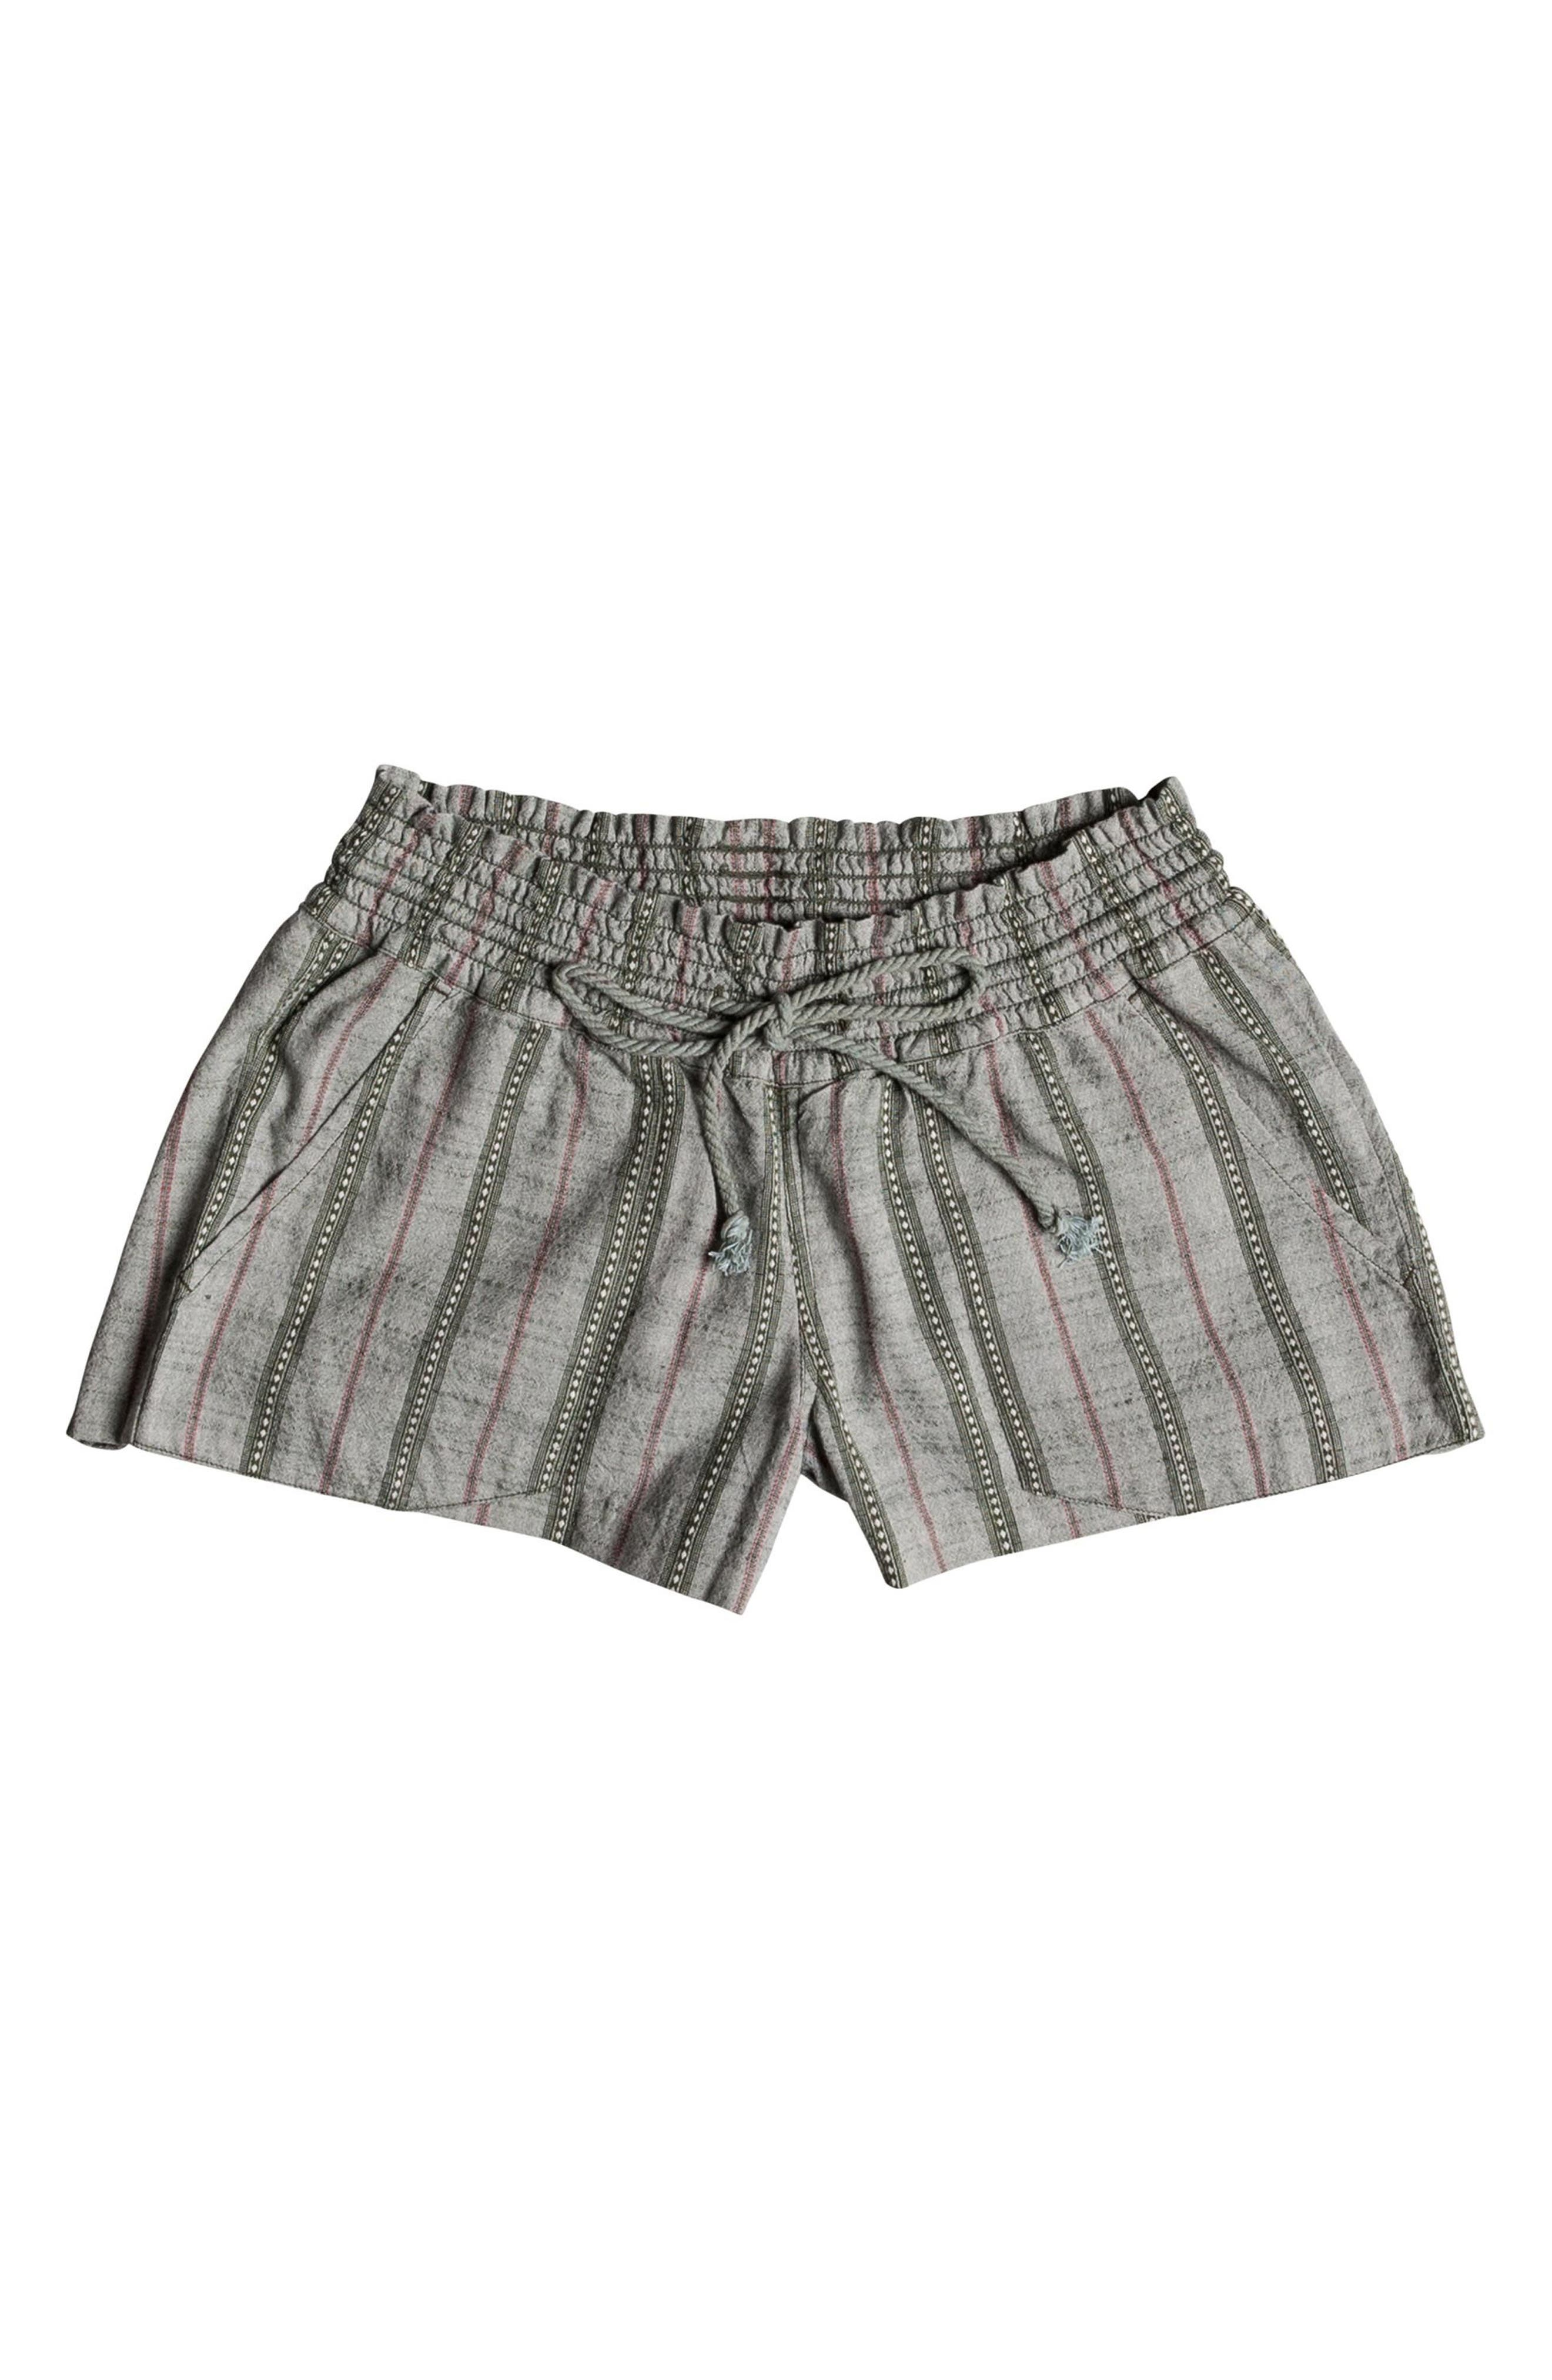 Oceanside Beach Shorts,                             Alternate thumbnail 4, color,                             300